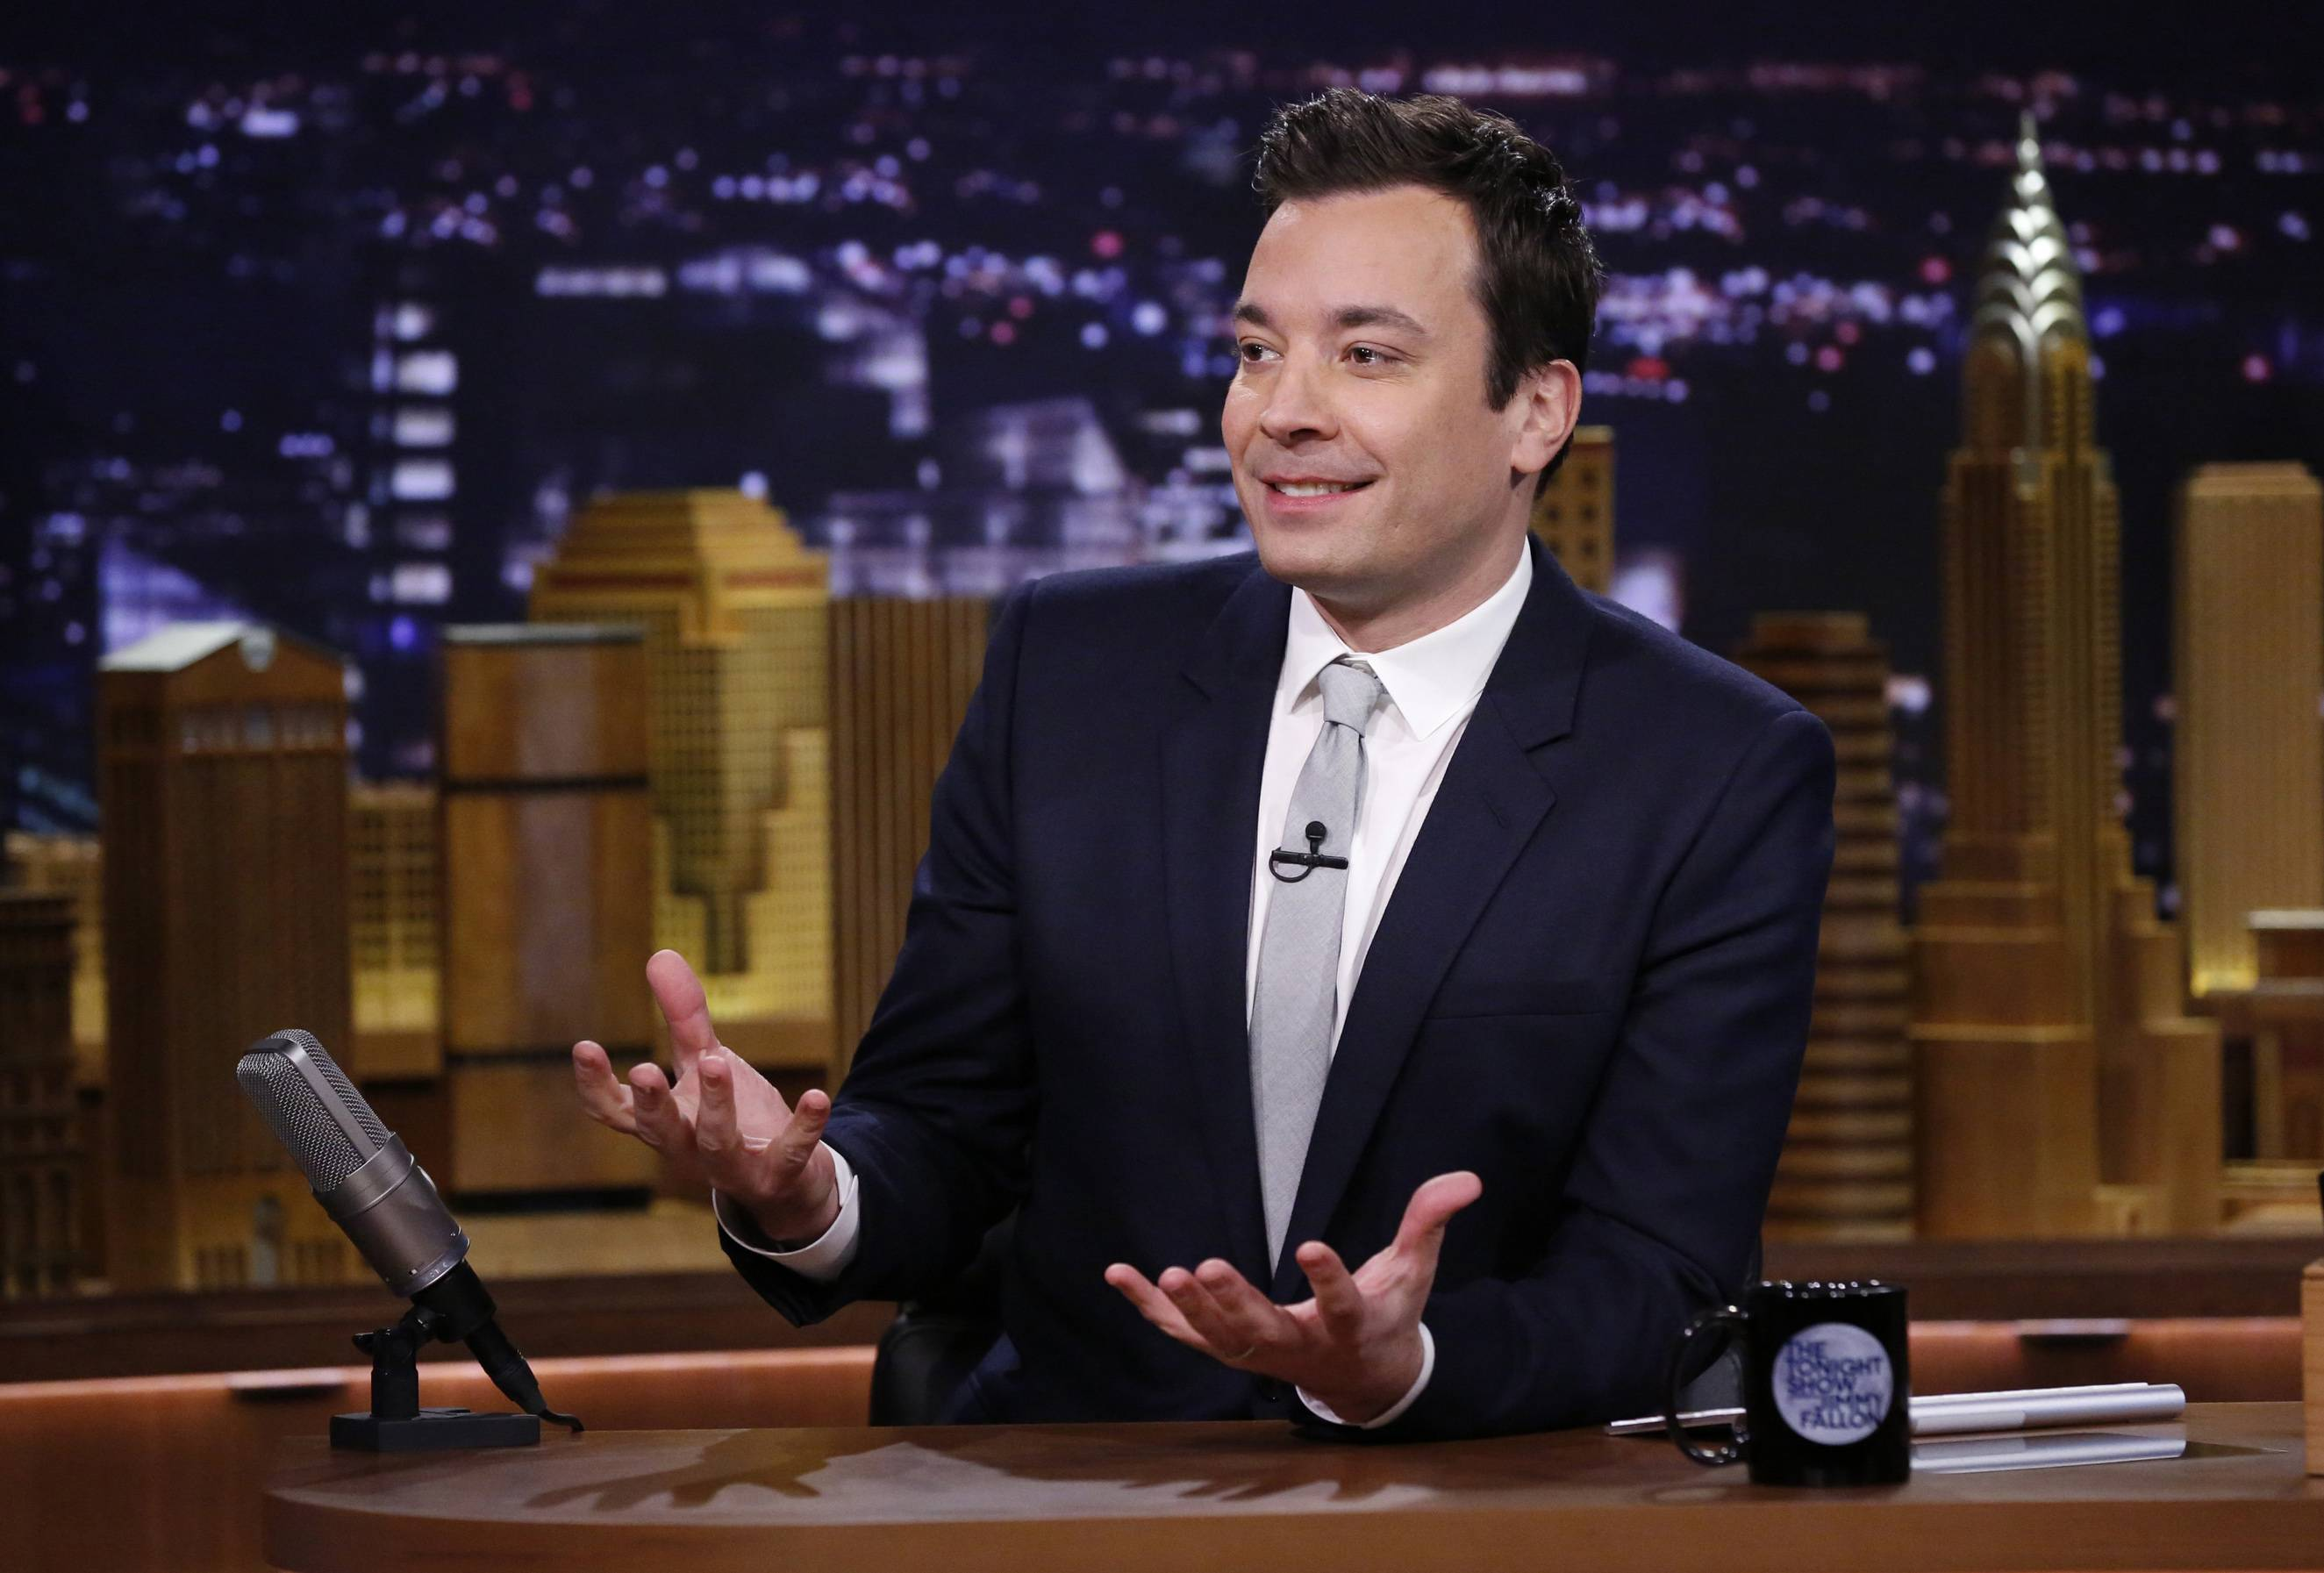 Jimmy Fallon said Monday on Twitter that he would join Mayor Rahm Emanuel in Chicago's Polar Plunge Sunday.